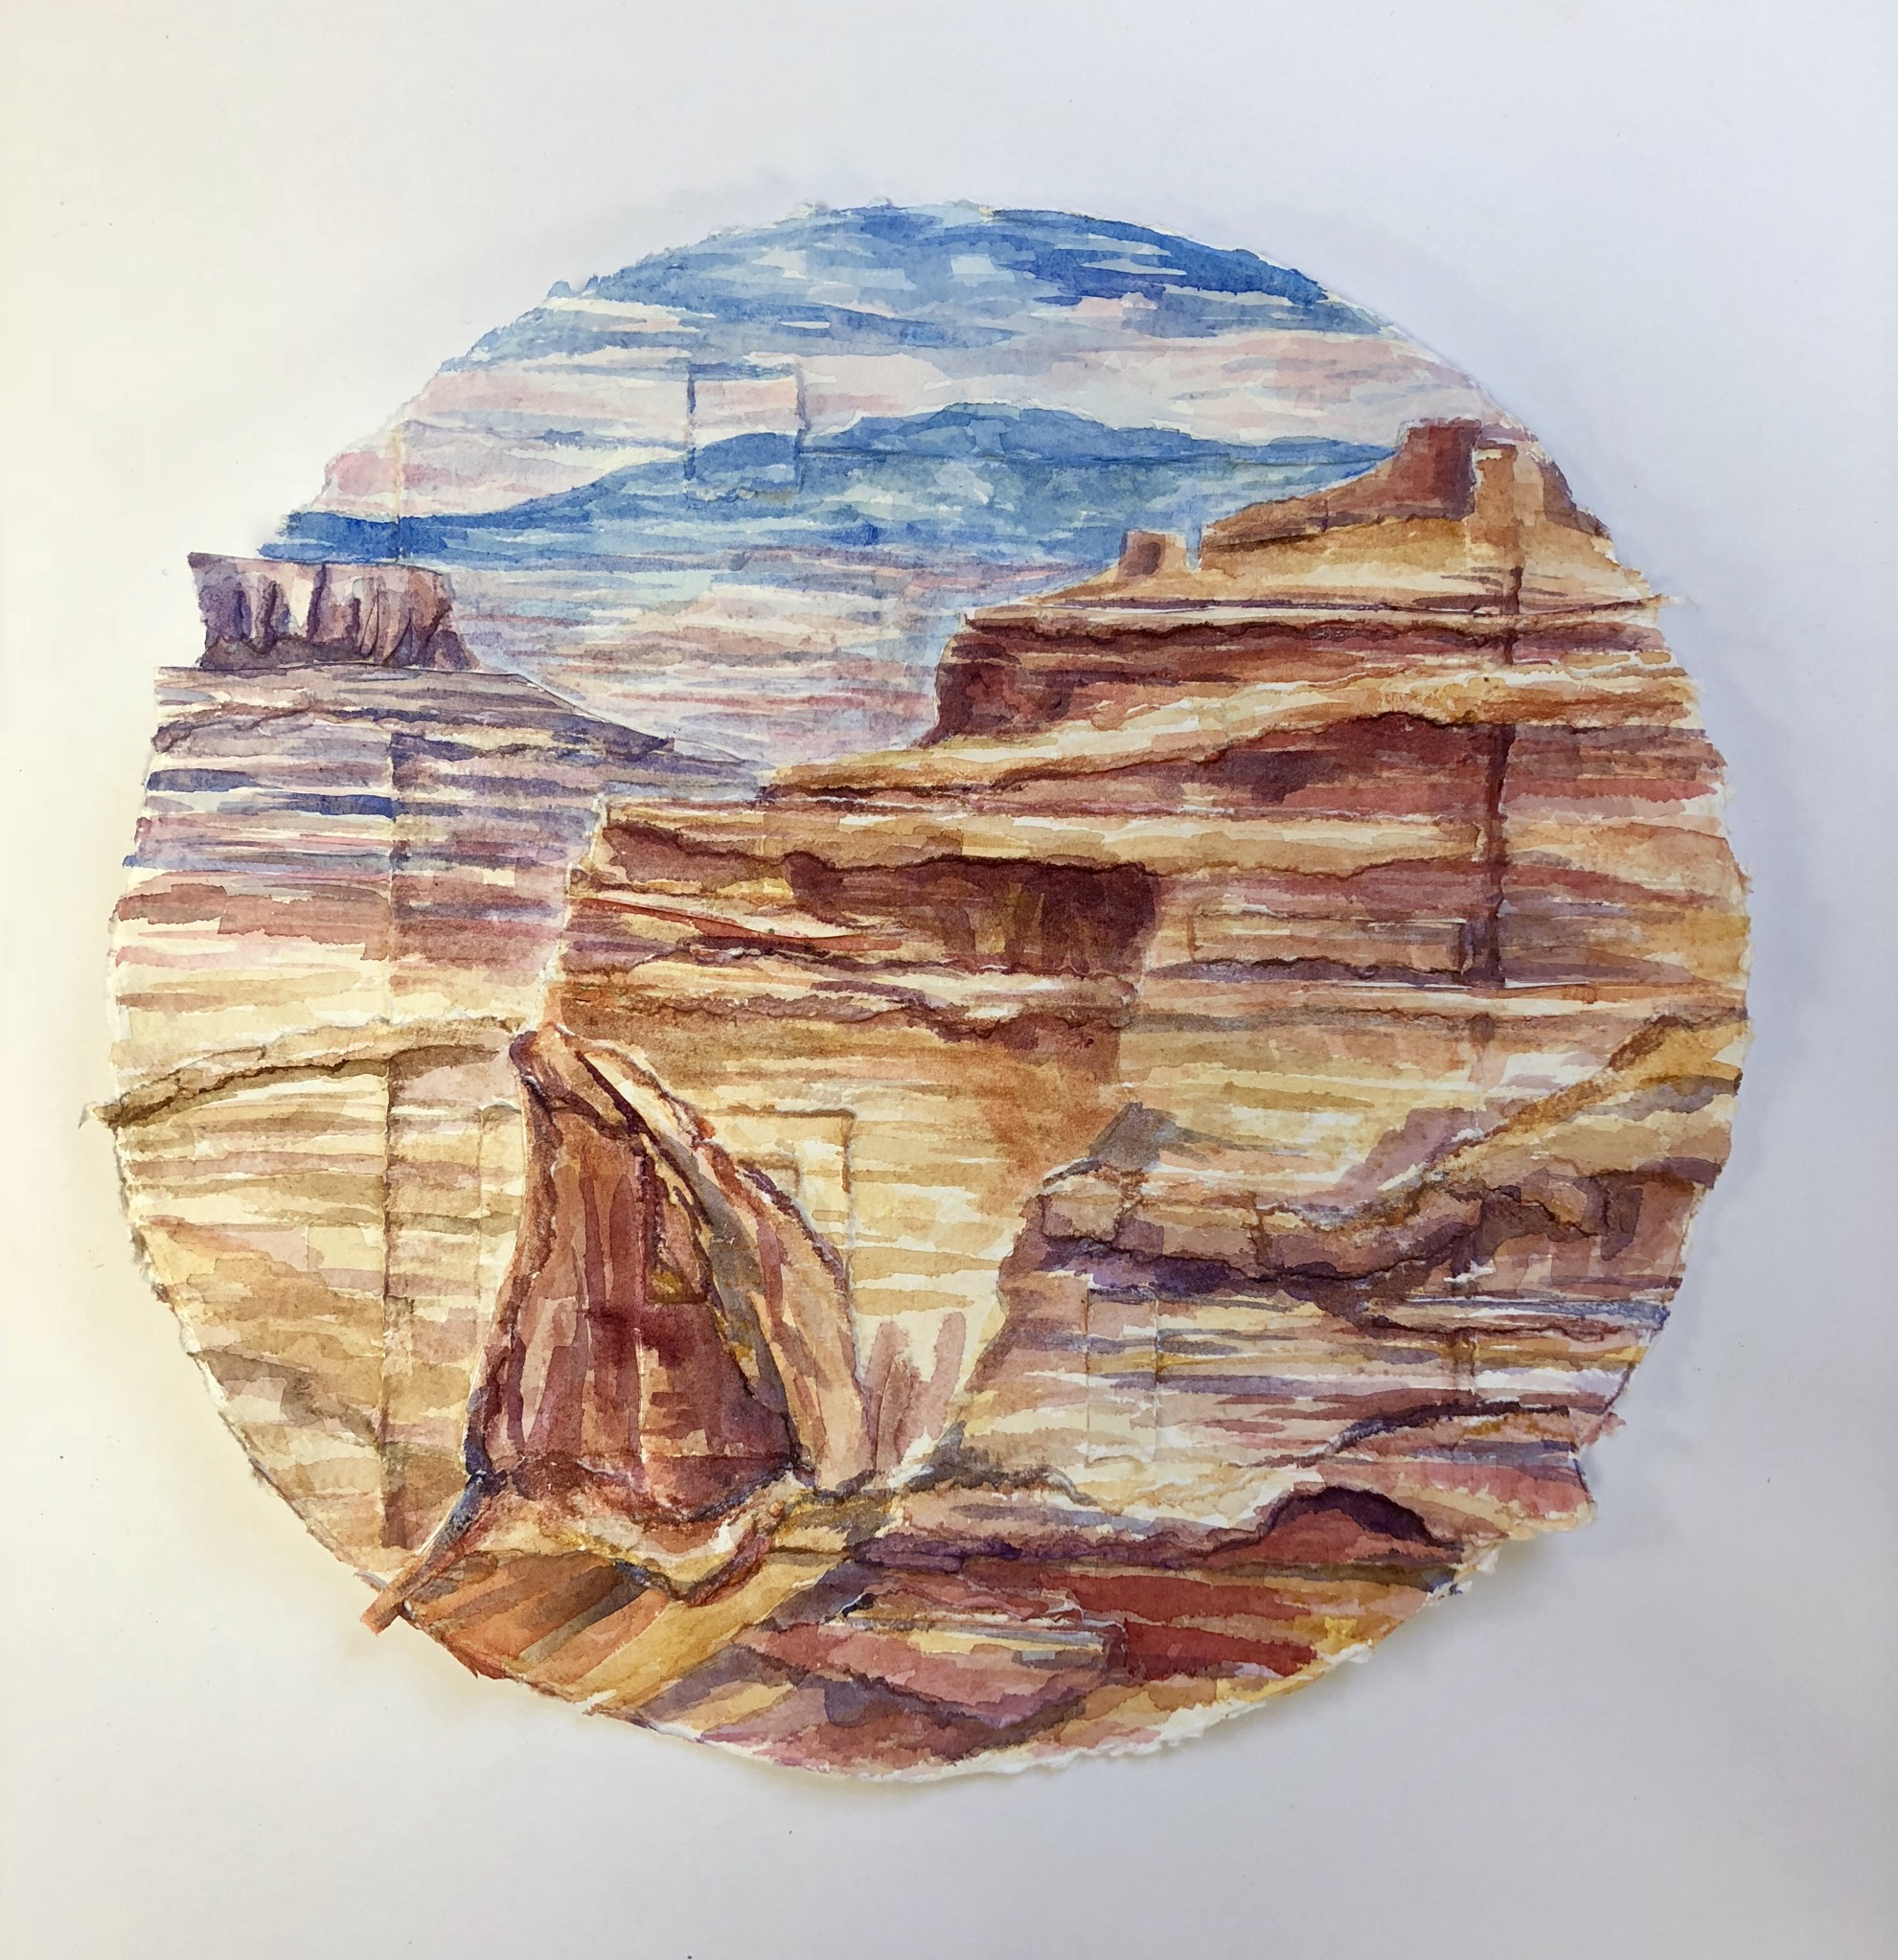 Landscape in the Round, Canyonlands National Park - watercolor and collage